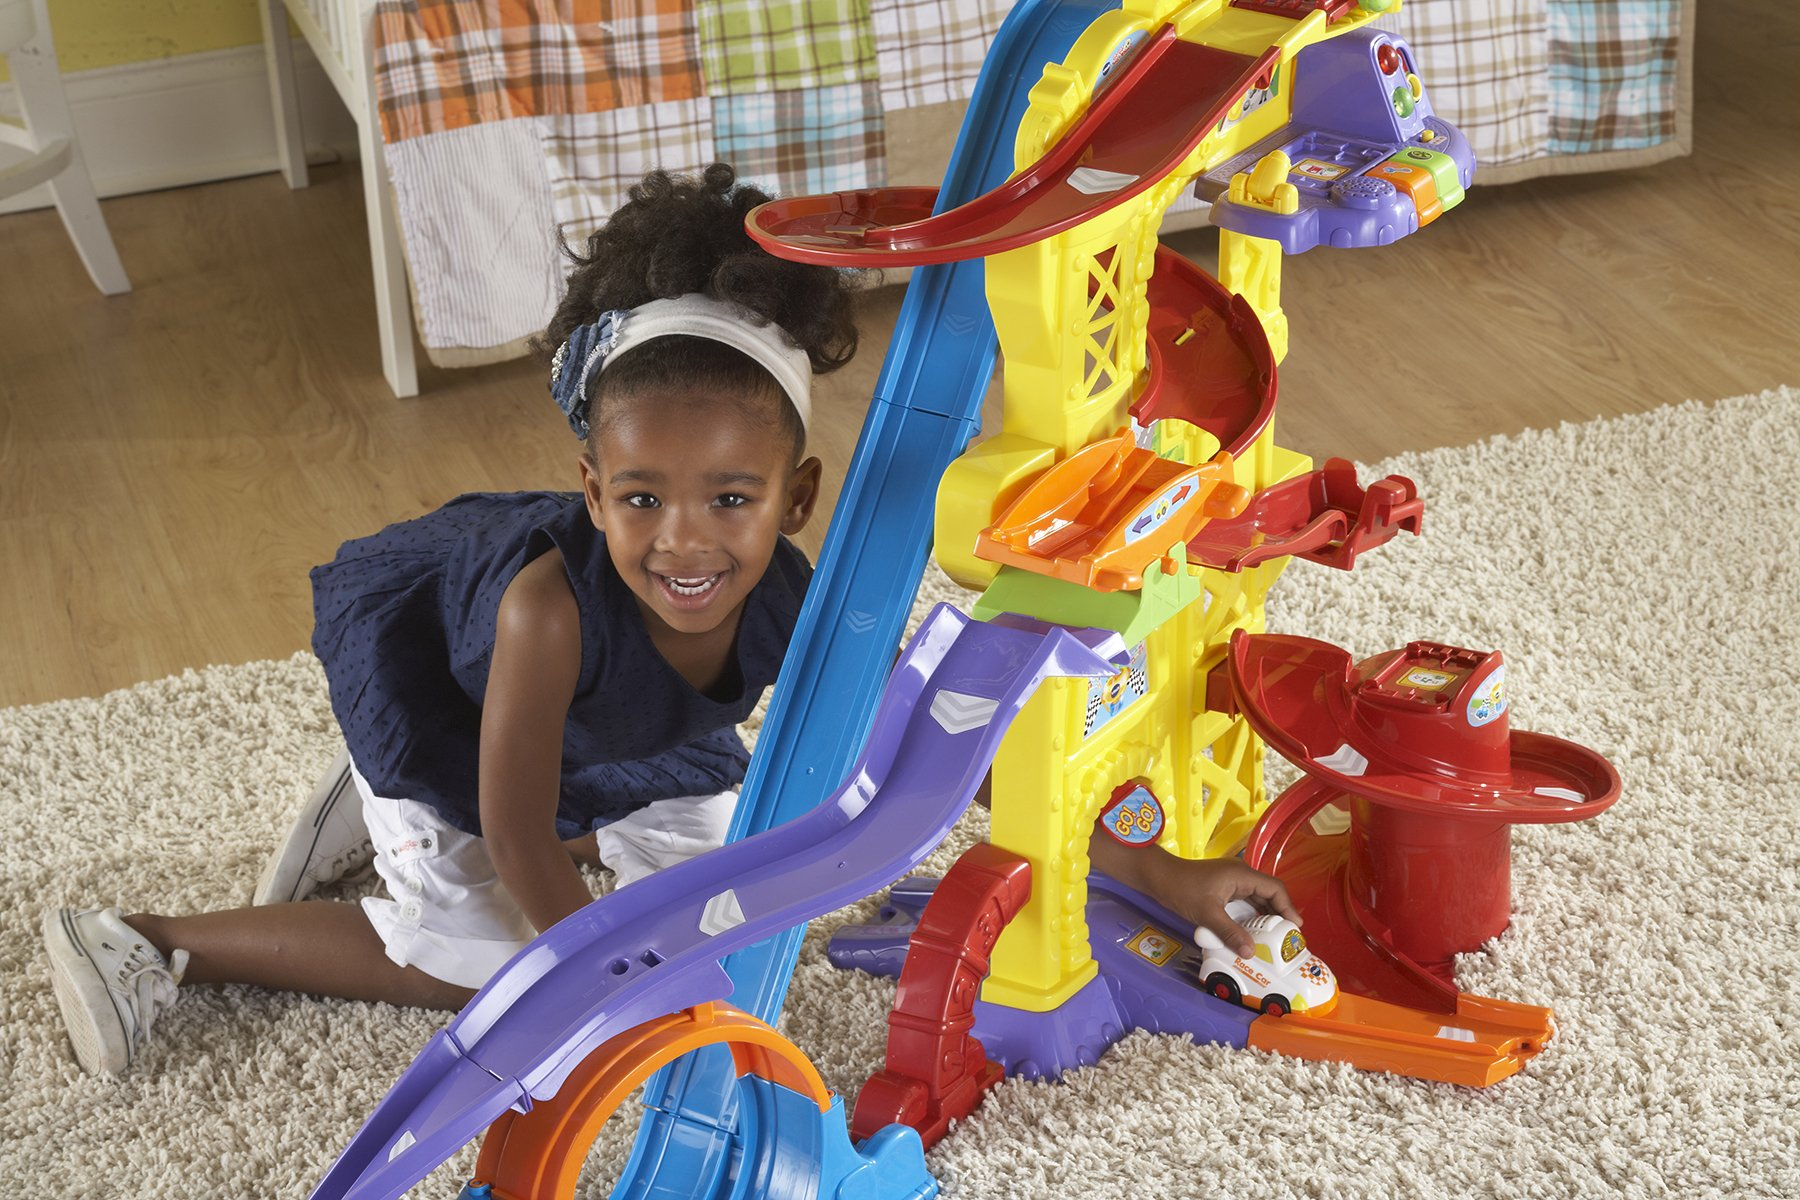 VTech Go! Go! Smart Wheels Ultimate Amazement Park Playset (Frustration Free Packaging) by VTech (Image #3)